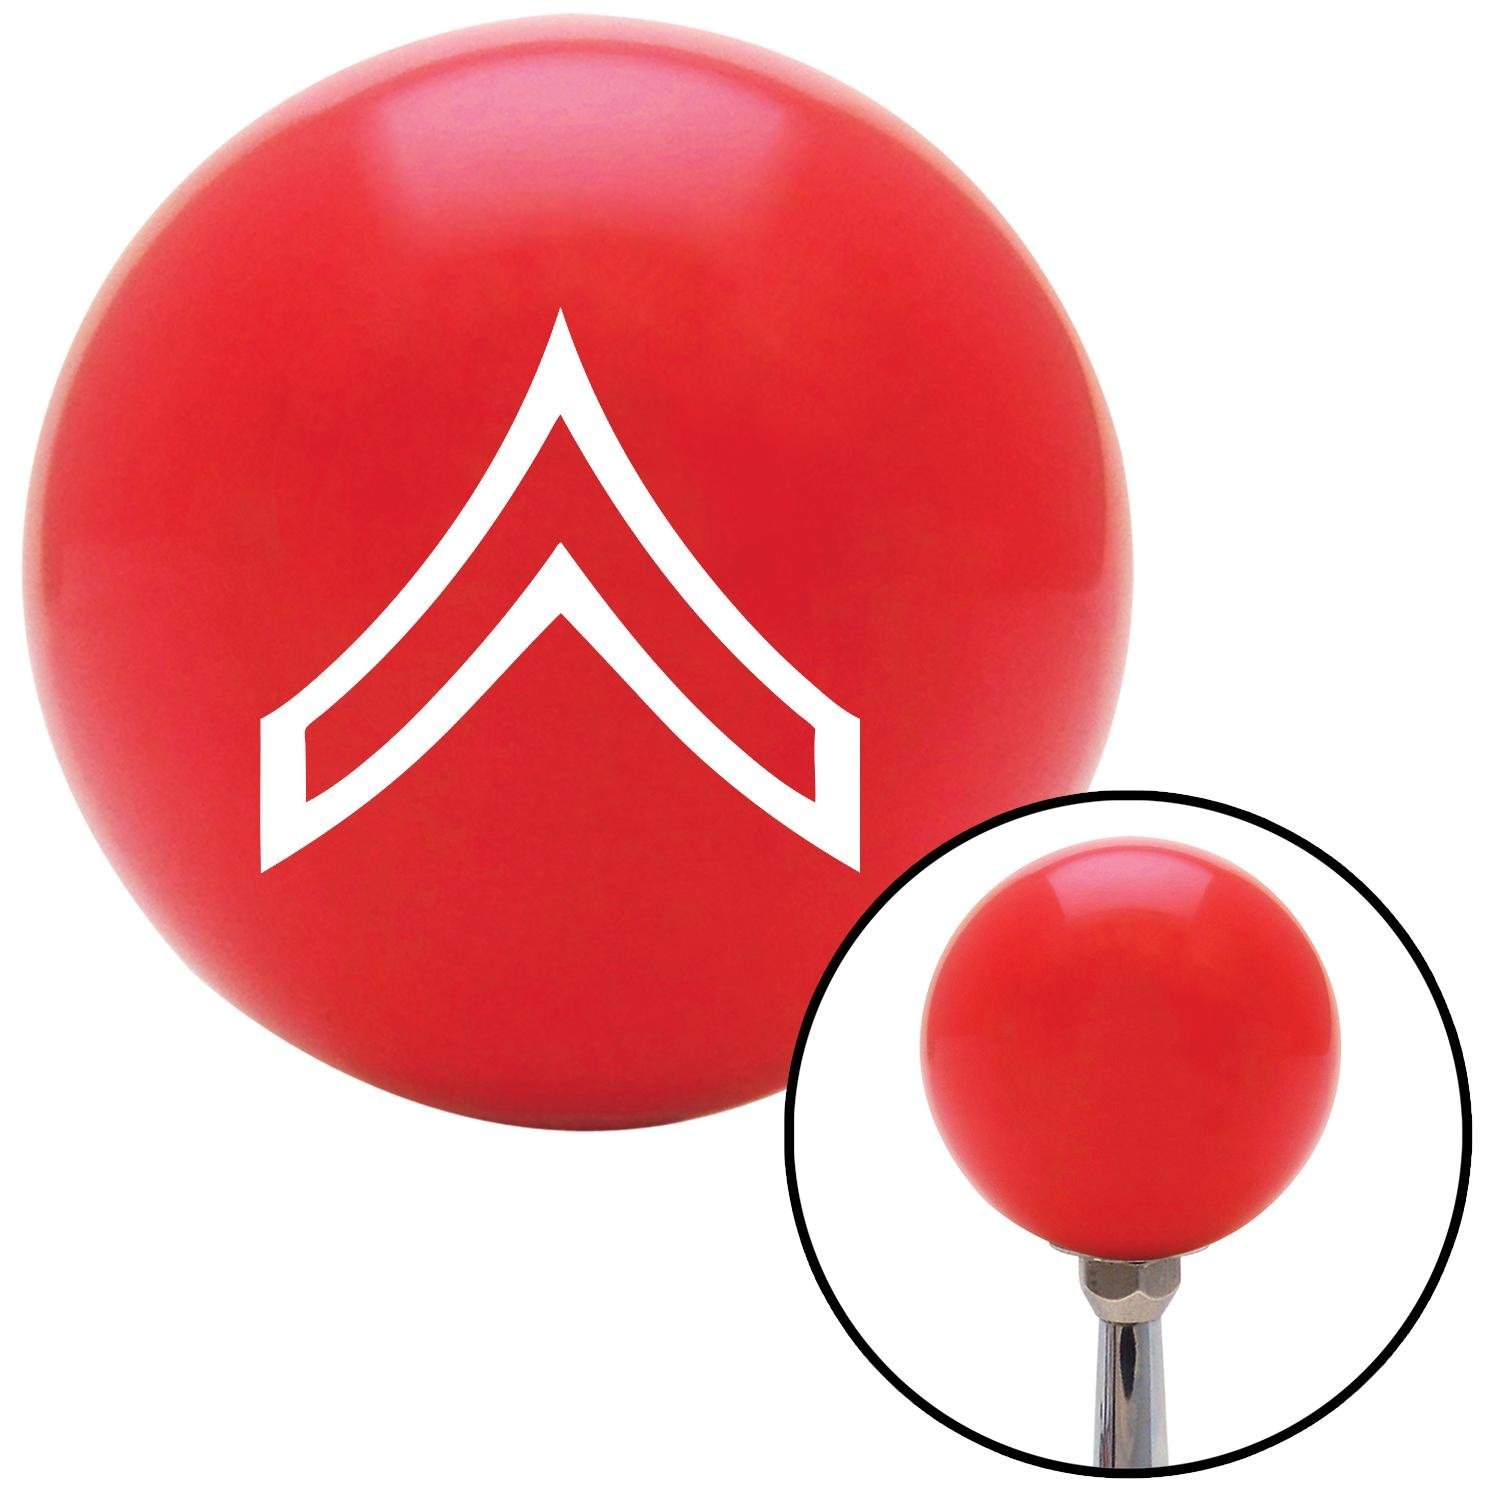 American Shifter 97839 Red Shift Knob with M16 x 1.5 Insert White Private